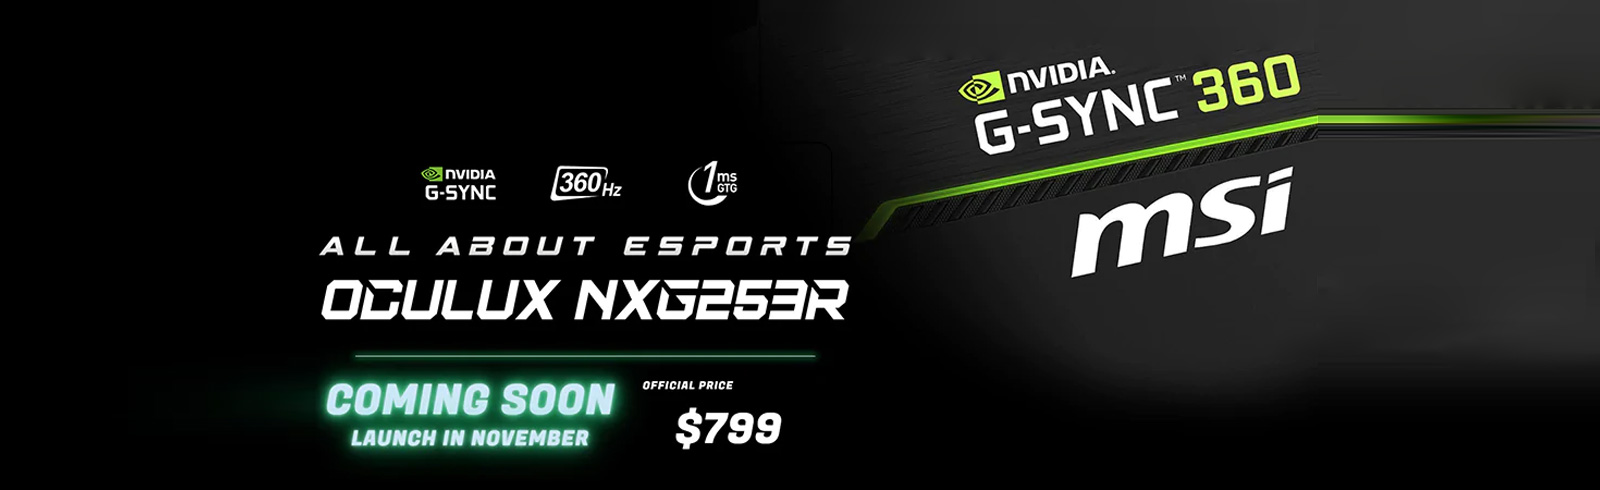 MSI Oculux NXG253R with Reflex Latency Analyzer and 360Hz refresh rate has been announced